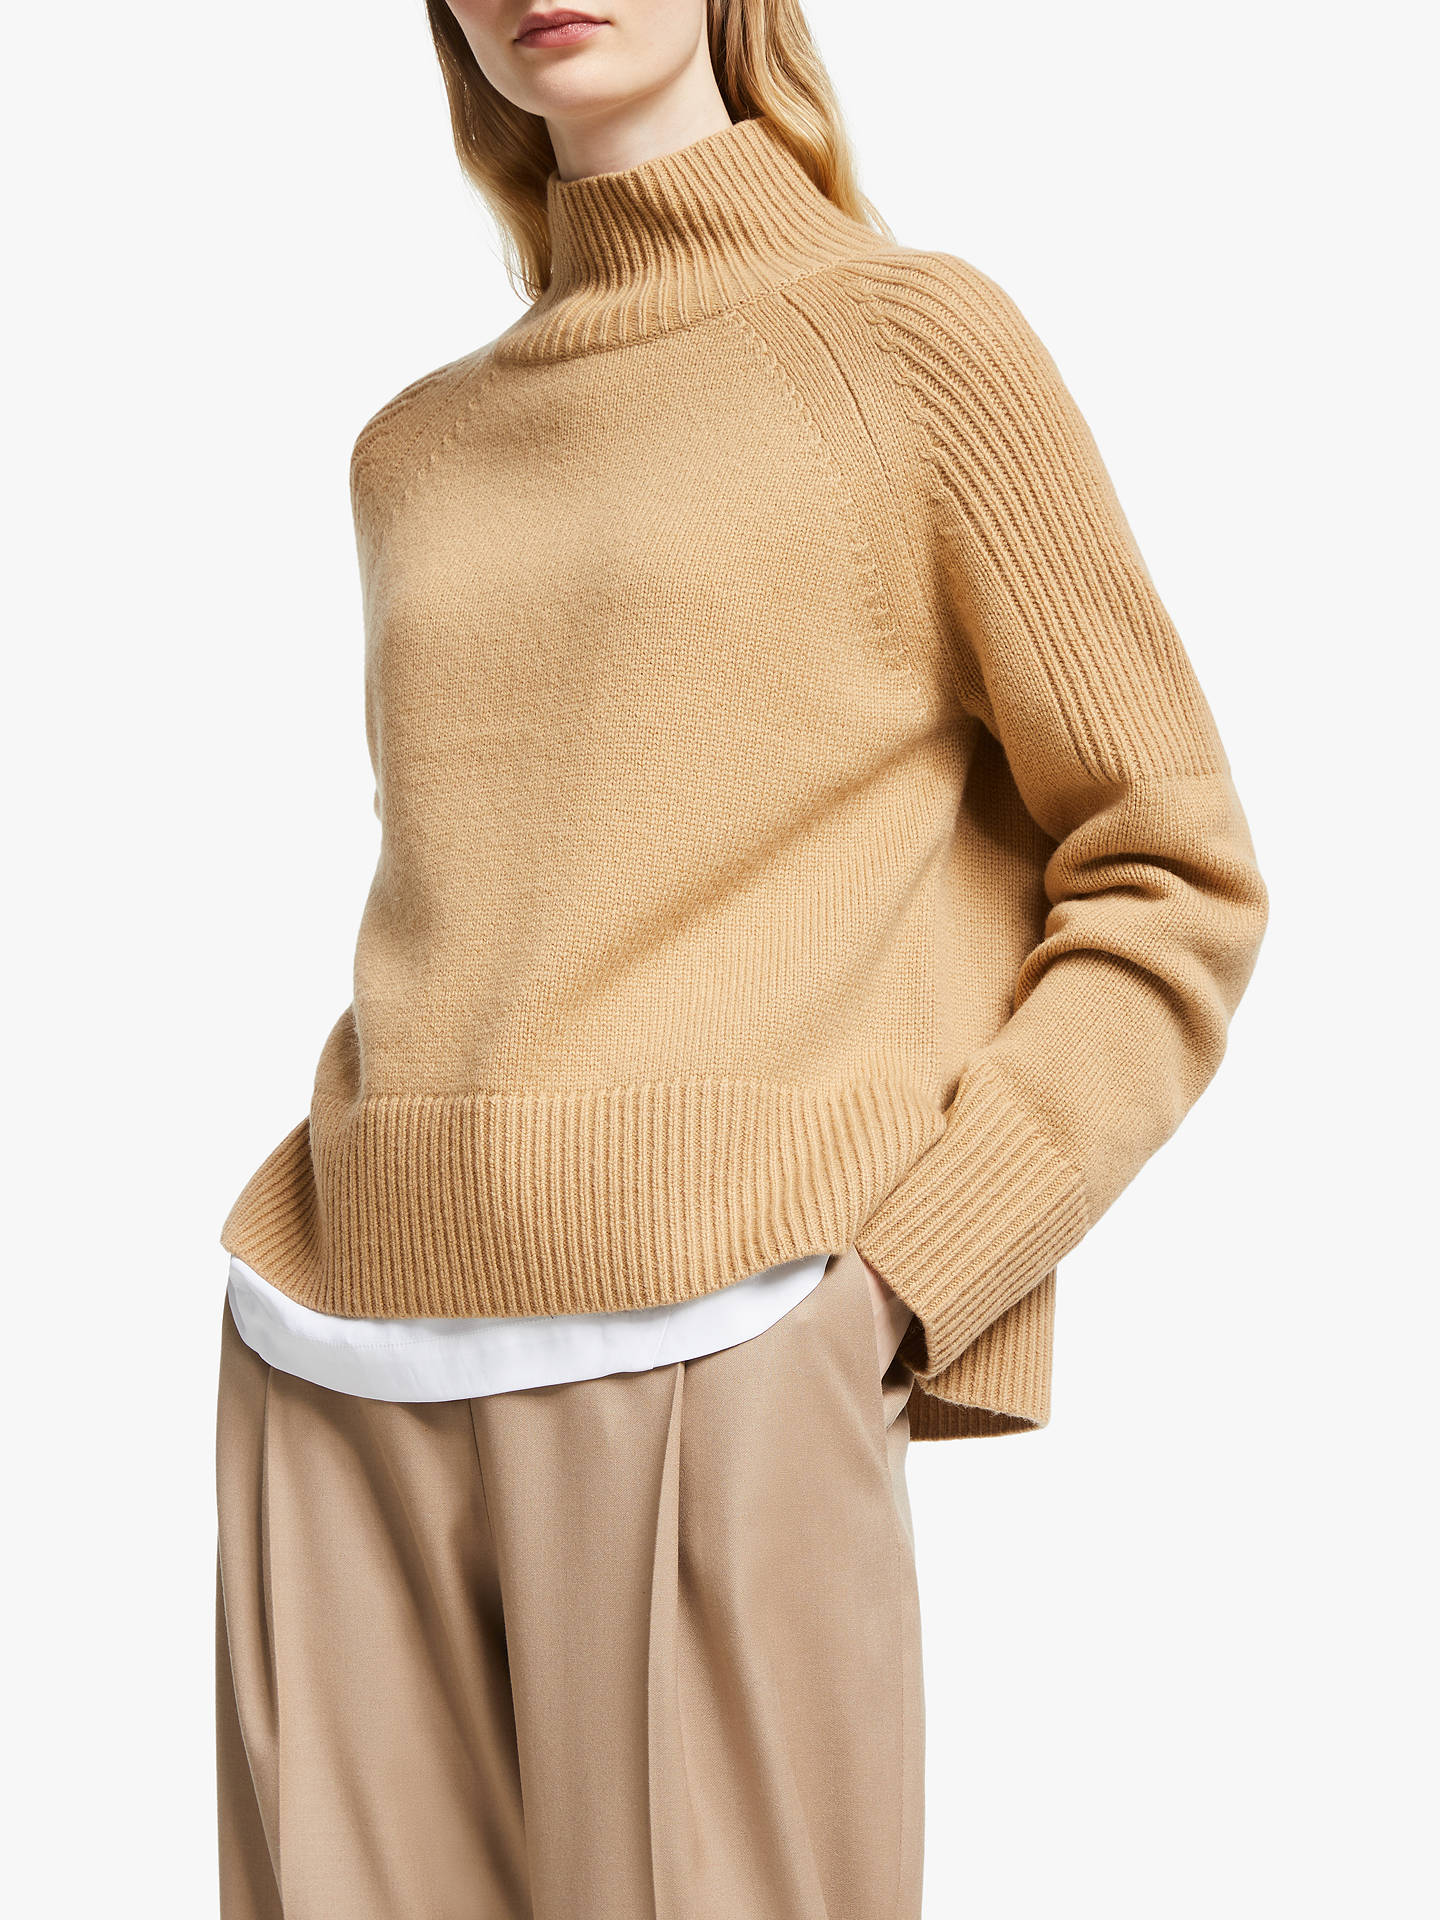 John Lewis & Partners Lambswool Wide Funnel Neck Sweater, Camel by John Lewis & Partners